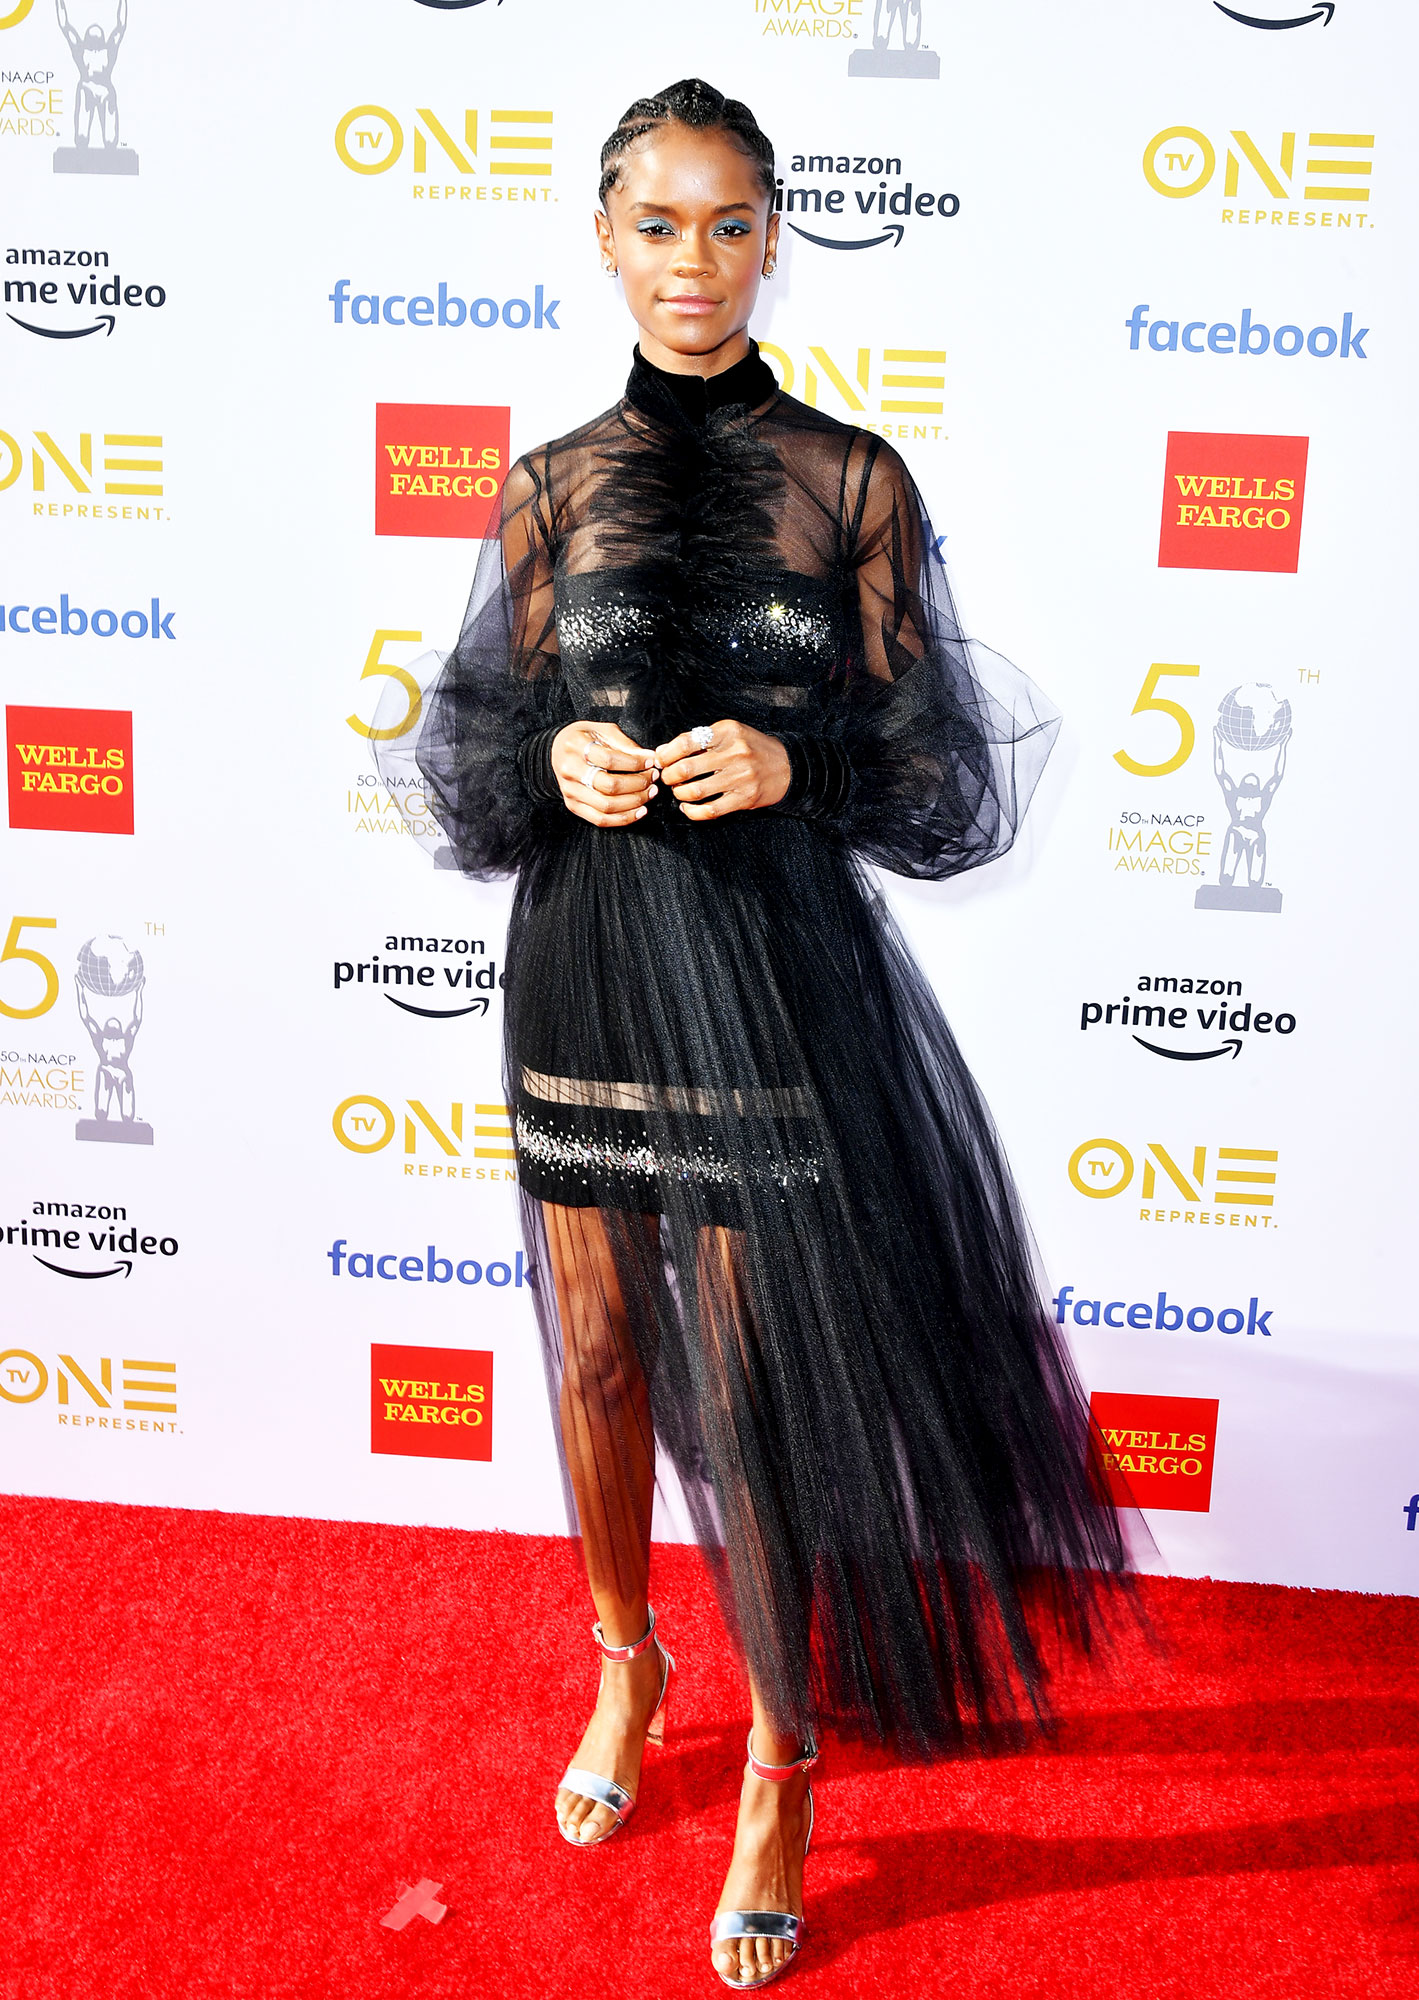 Letitia Wright See the Stars at the NAACP Image Awards - Wearing a crystal-embellished black tulle Georges Chakra mini with Nicholas Kirkwood sandals and Cartier jewels.